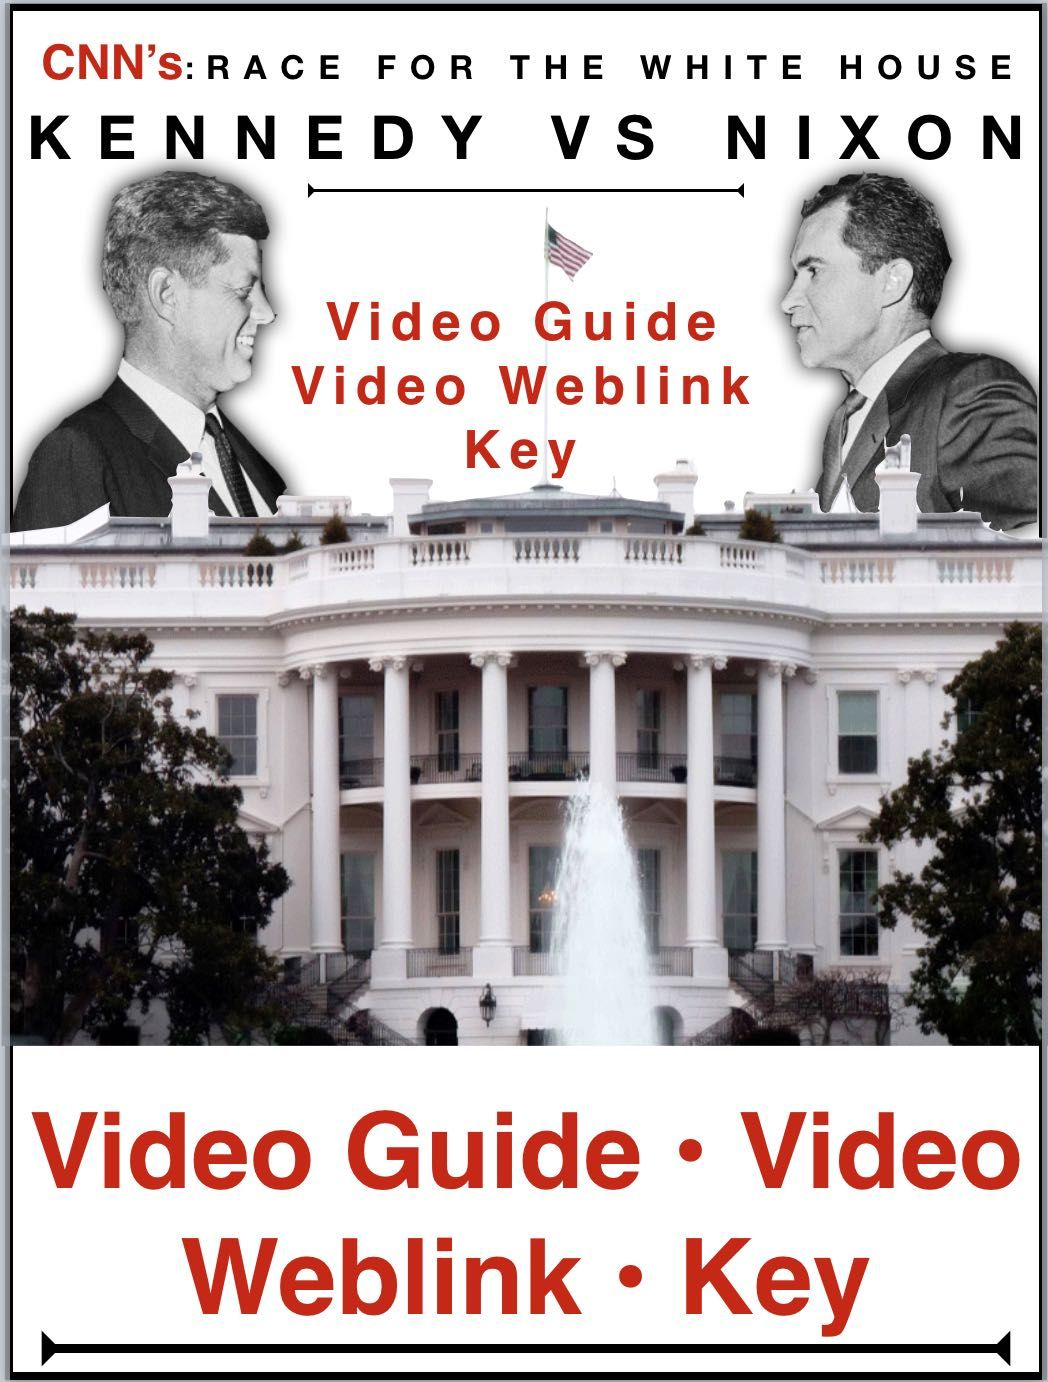 Race To The Whitehouse Kennedy V Nixon Video Guide Plus Video Web Link